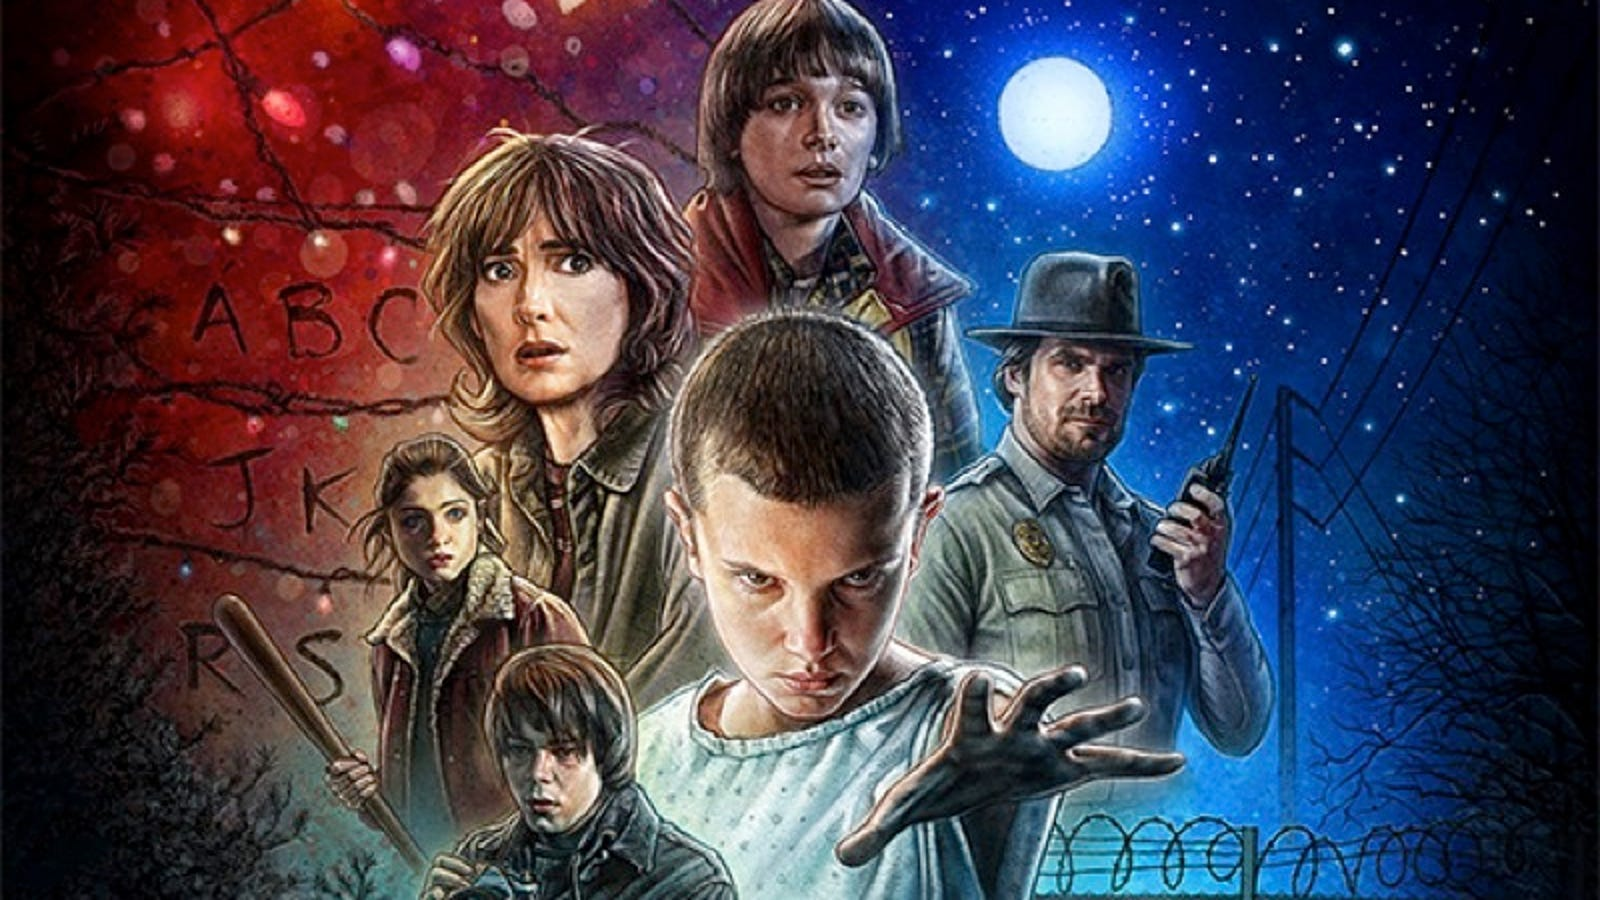 Netflix's Stranger Things TV Series Openly Worships at the Altar of Spielberg